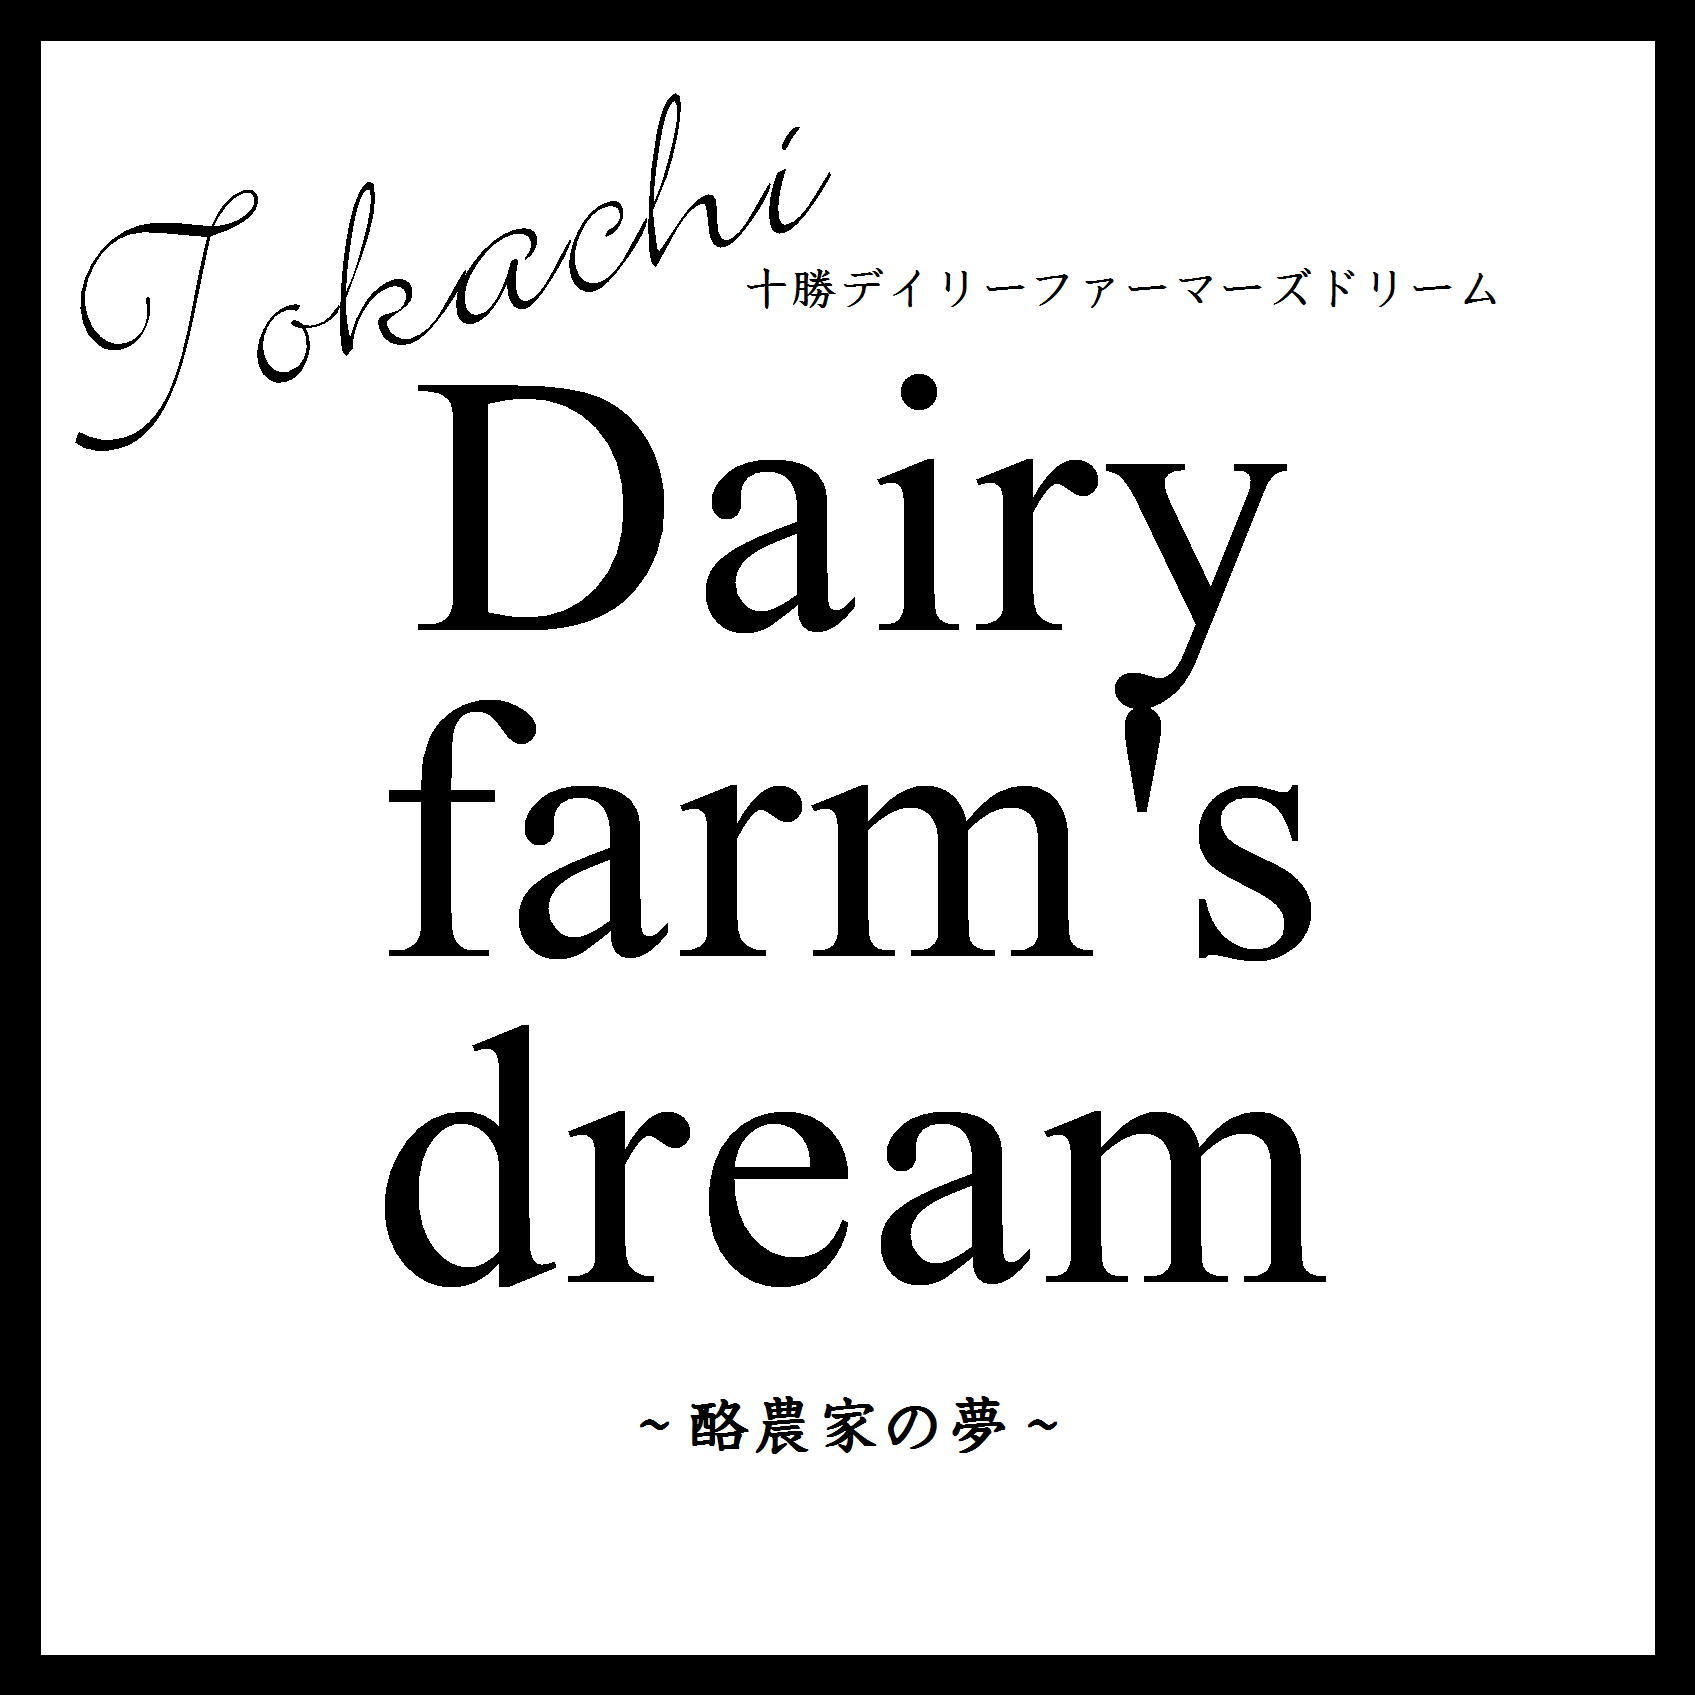 Tokachi dairy farm's dream